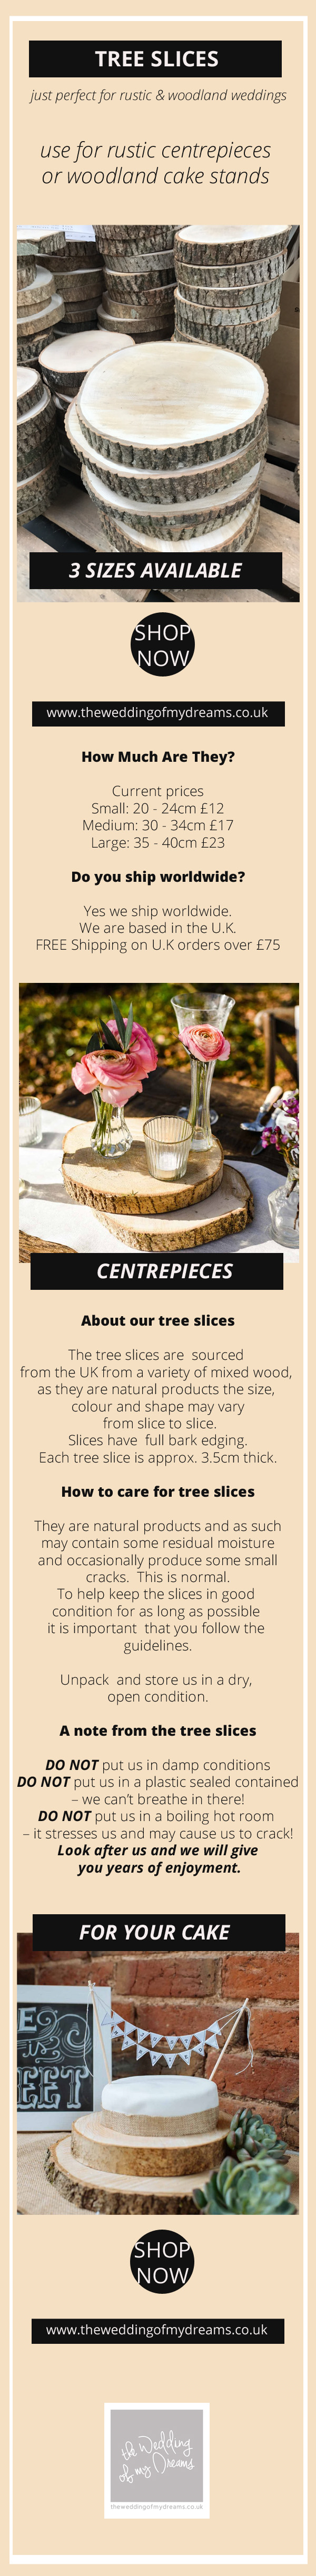 Rustic wooden tree slices for weddings